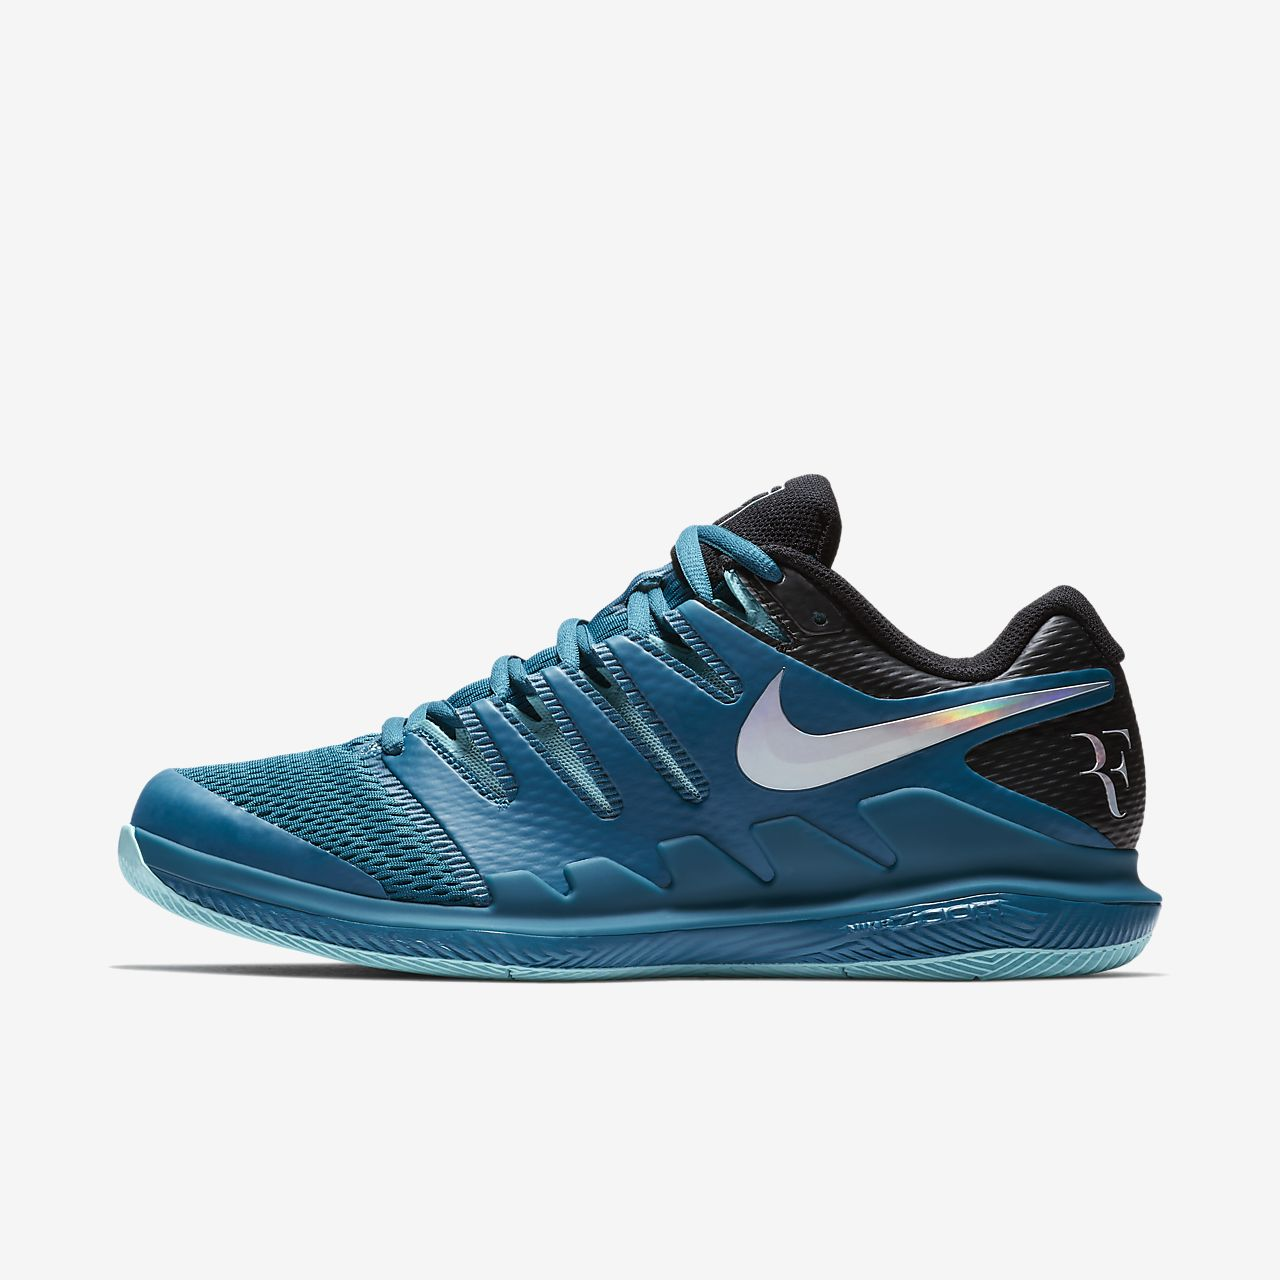 ... Nike Air Zoom Vapor X HC Men's Tennis Shoe